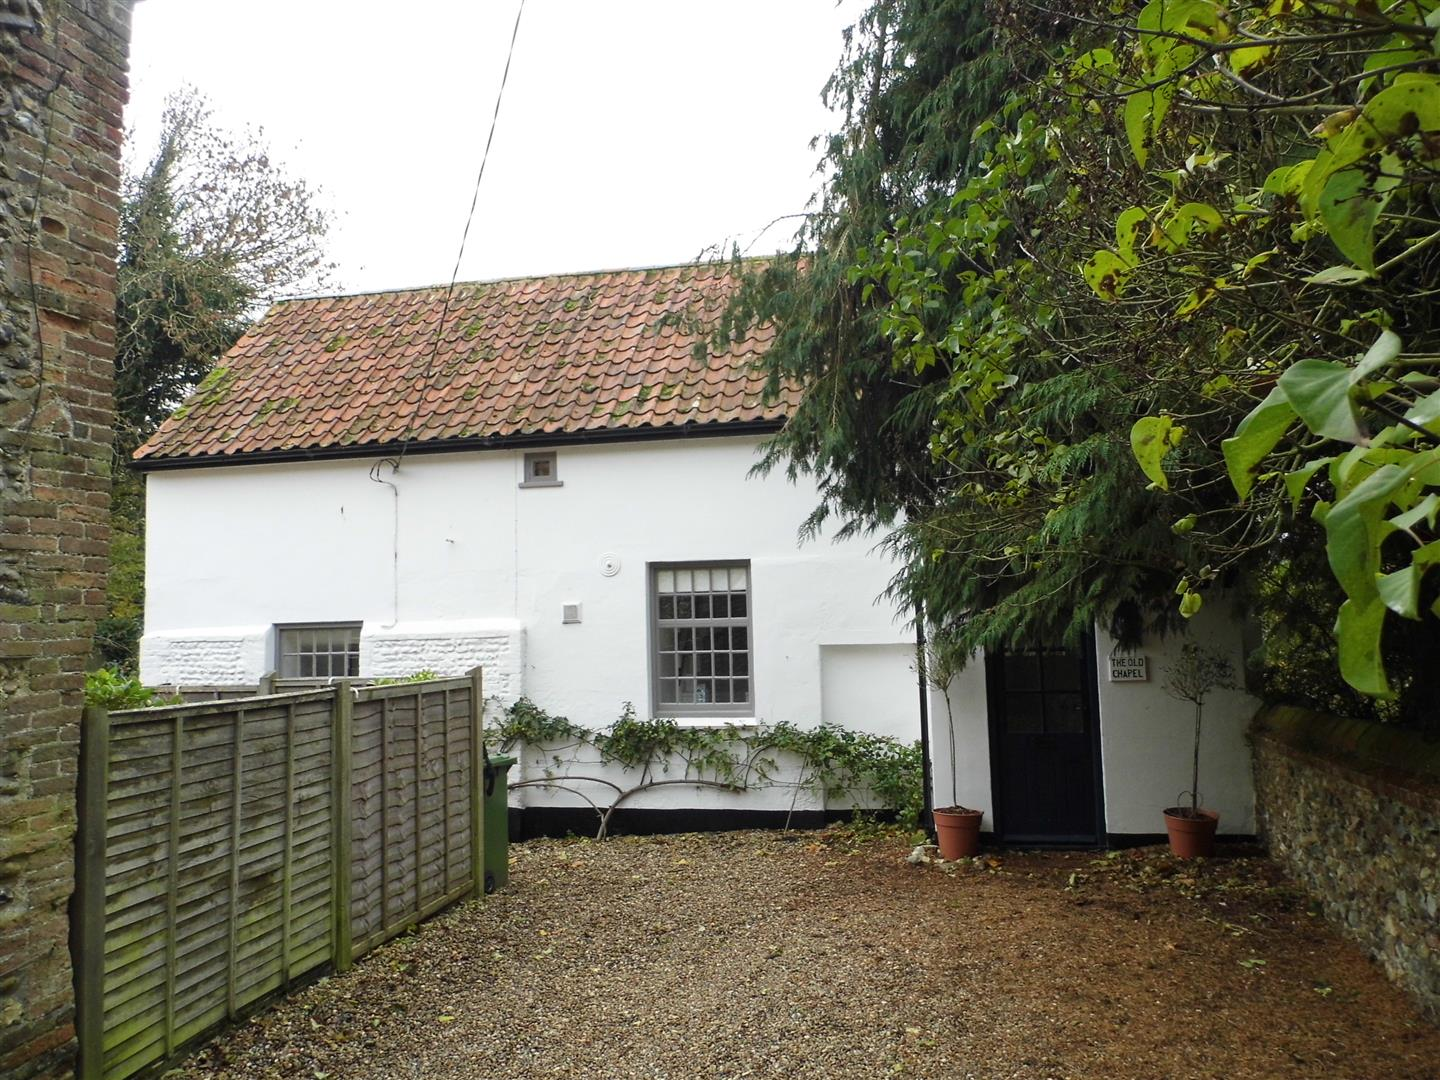 2 bed house to rent in Melton Constable, NR24 2NS - Property Image 1